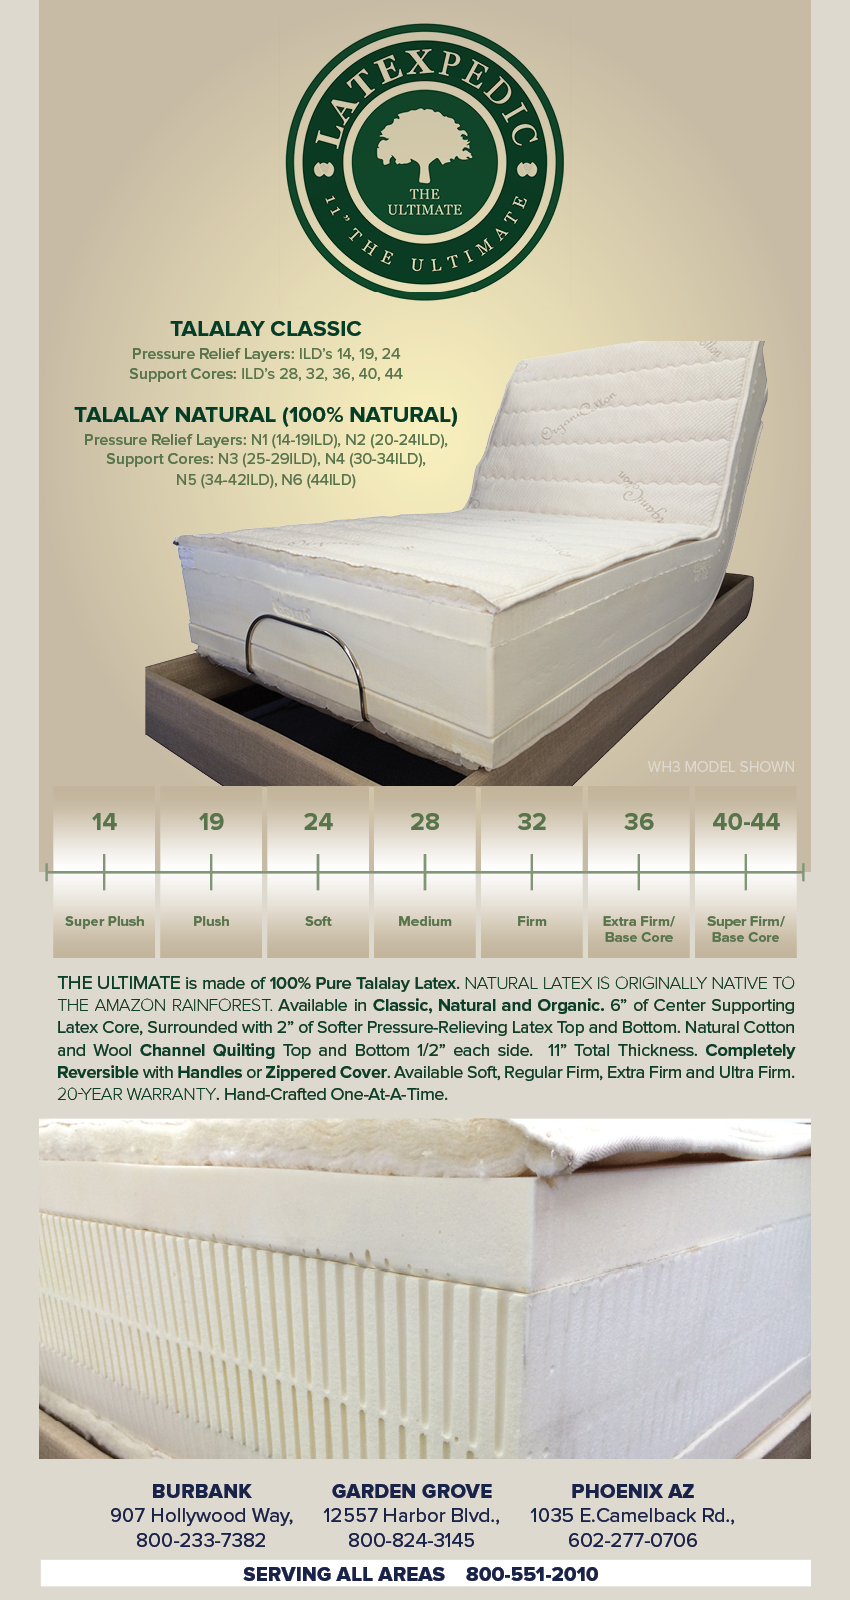 Oakland CA Jose San Francisco stairway chair staircase   latex mattress